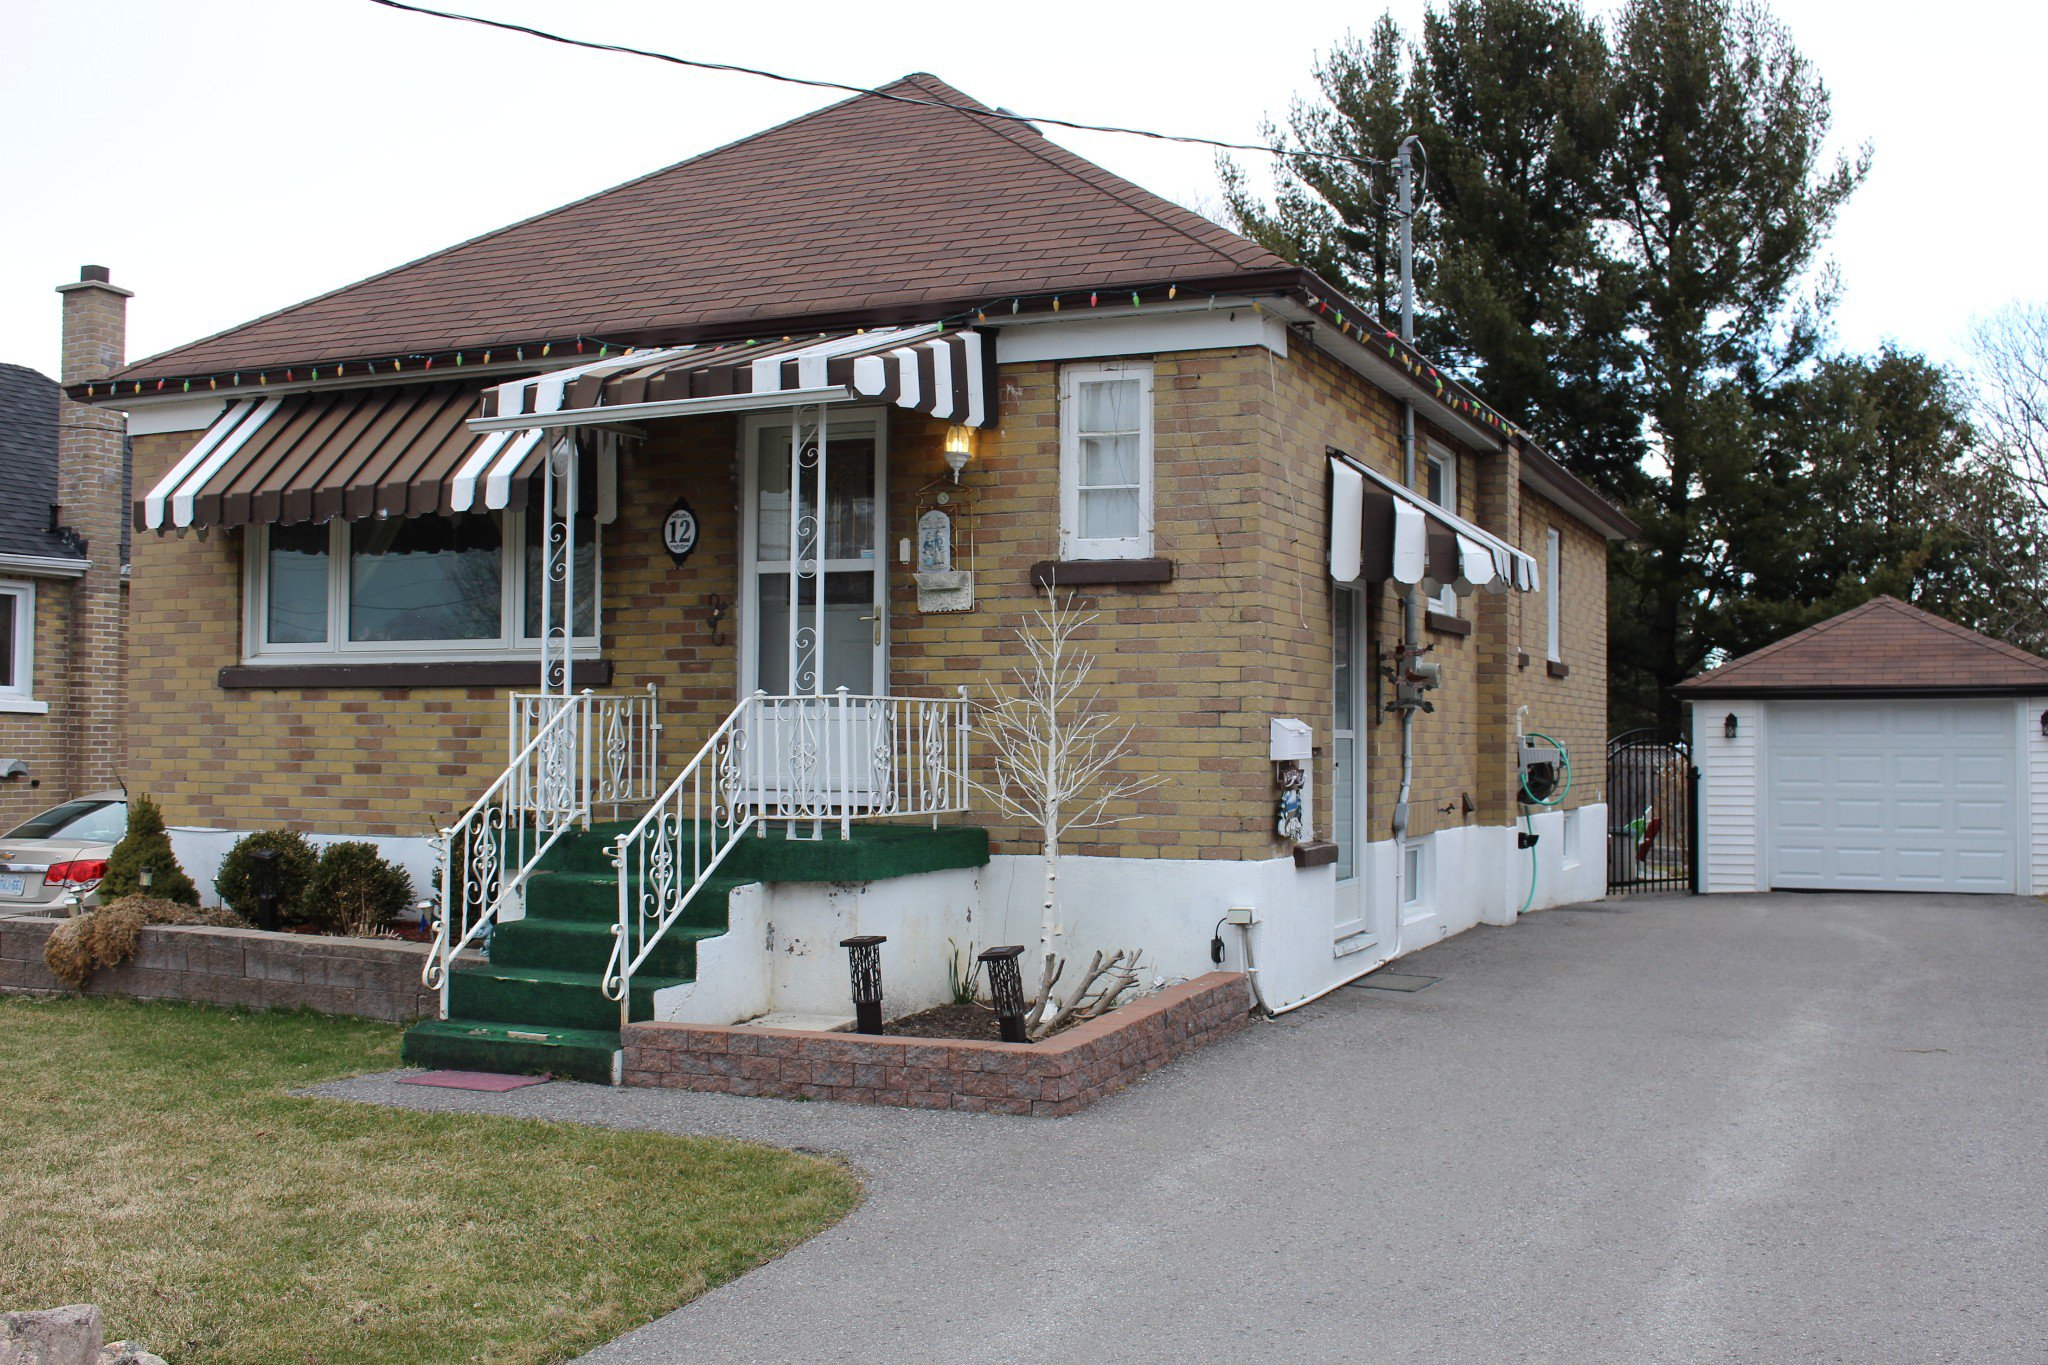 Photo 26: Photos: 12 Clovelly Street in Port Hope: House for sale : MLS®# 187125